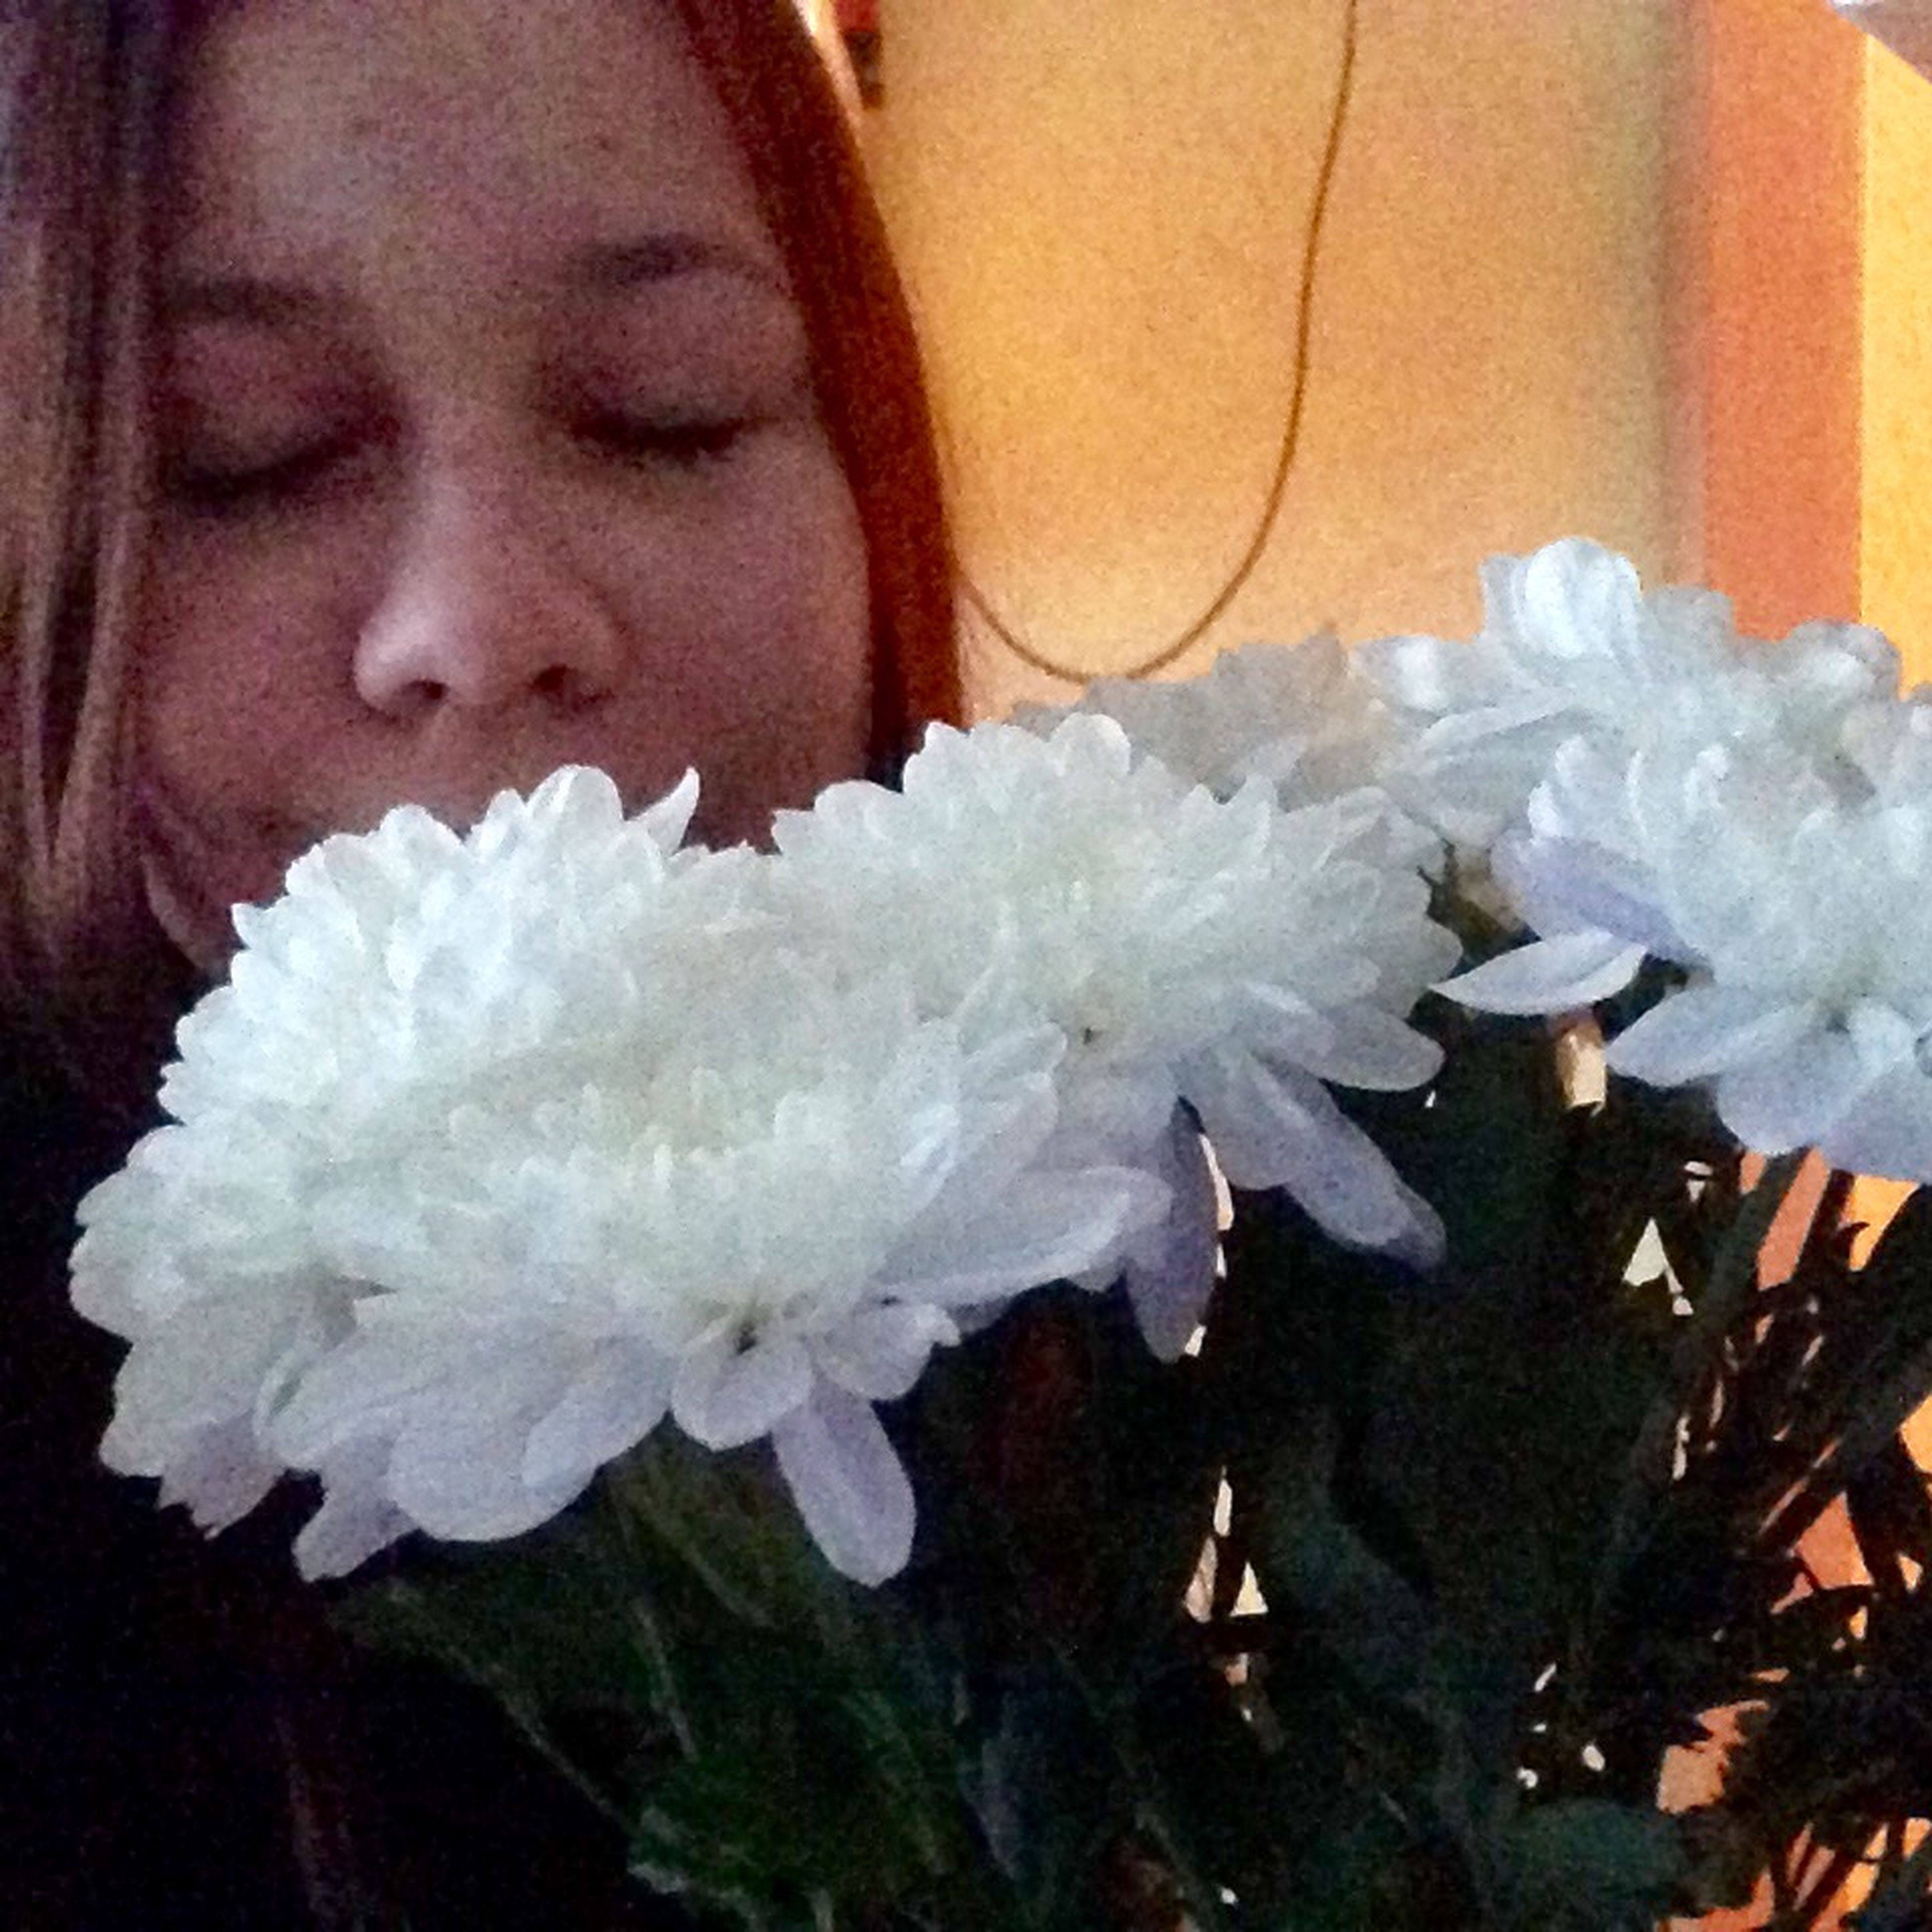 flower, indoors, fragility, freshness, close-up, white color, flower head, petal, focus on foreground, home interior, holding, person, white, rose - flower, softness, vase, single flower, blooming